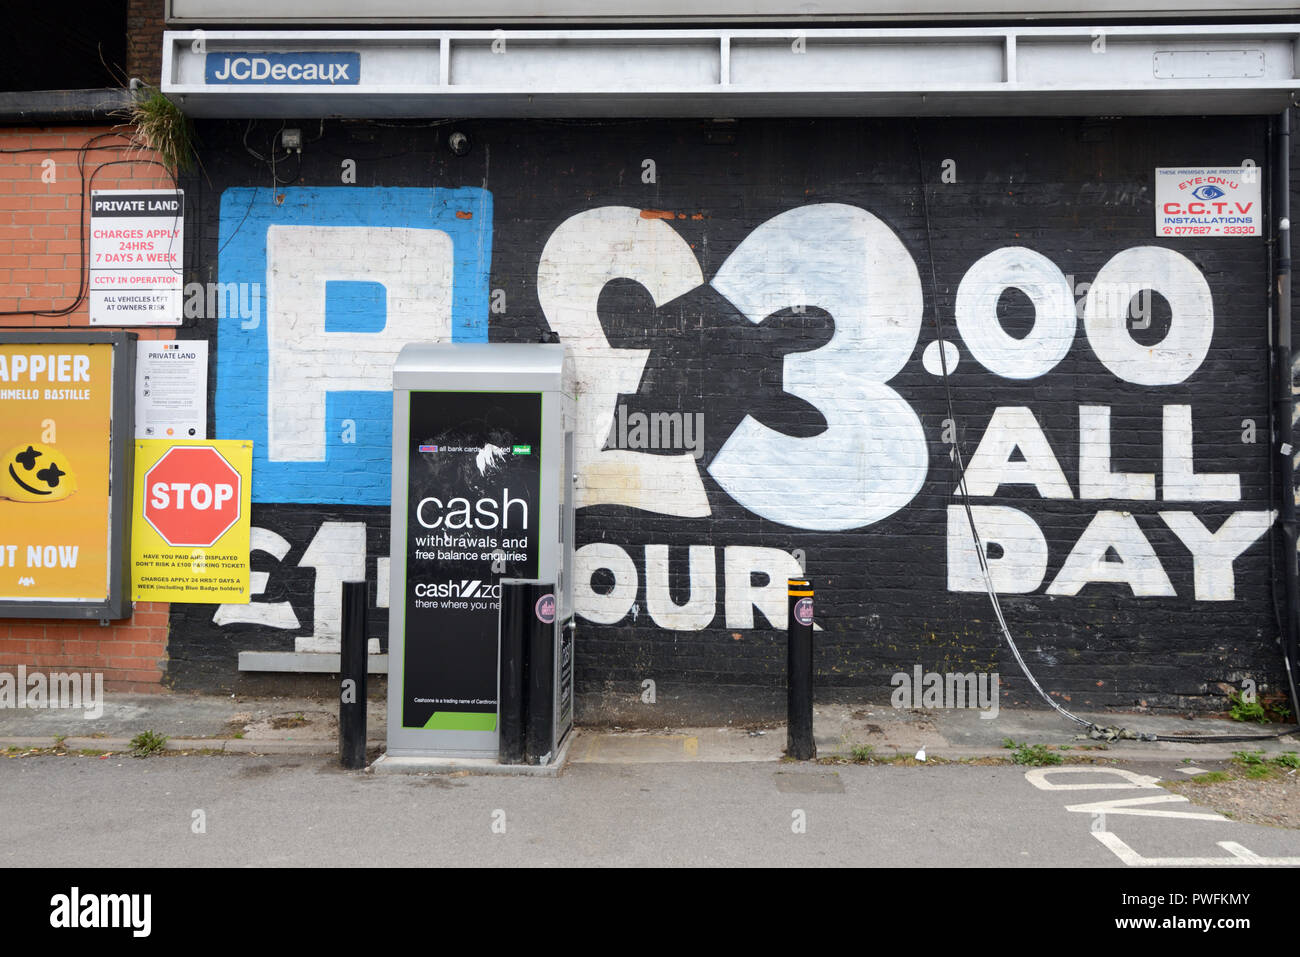 Car Park with Parking Rates and Pay and Display Machine at Digbeth Birmingham England - Stock Image